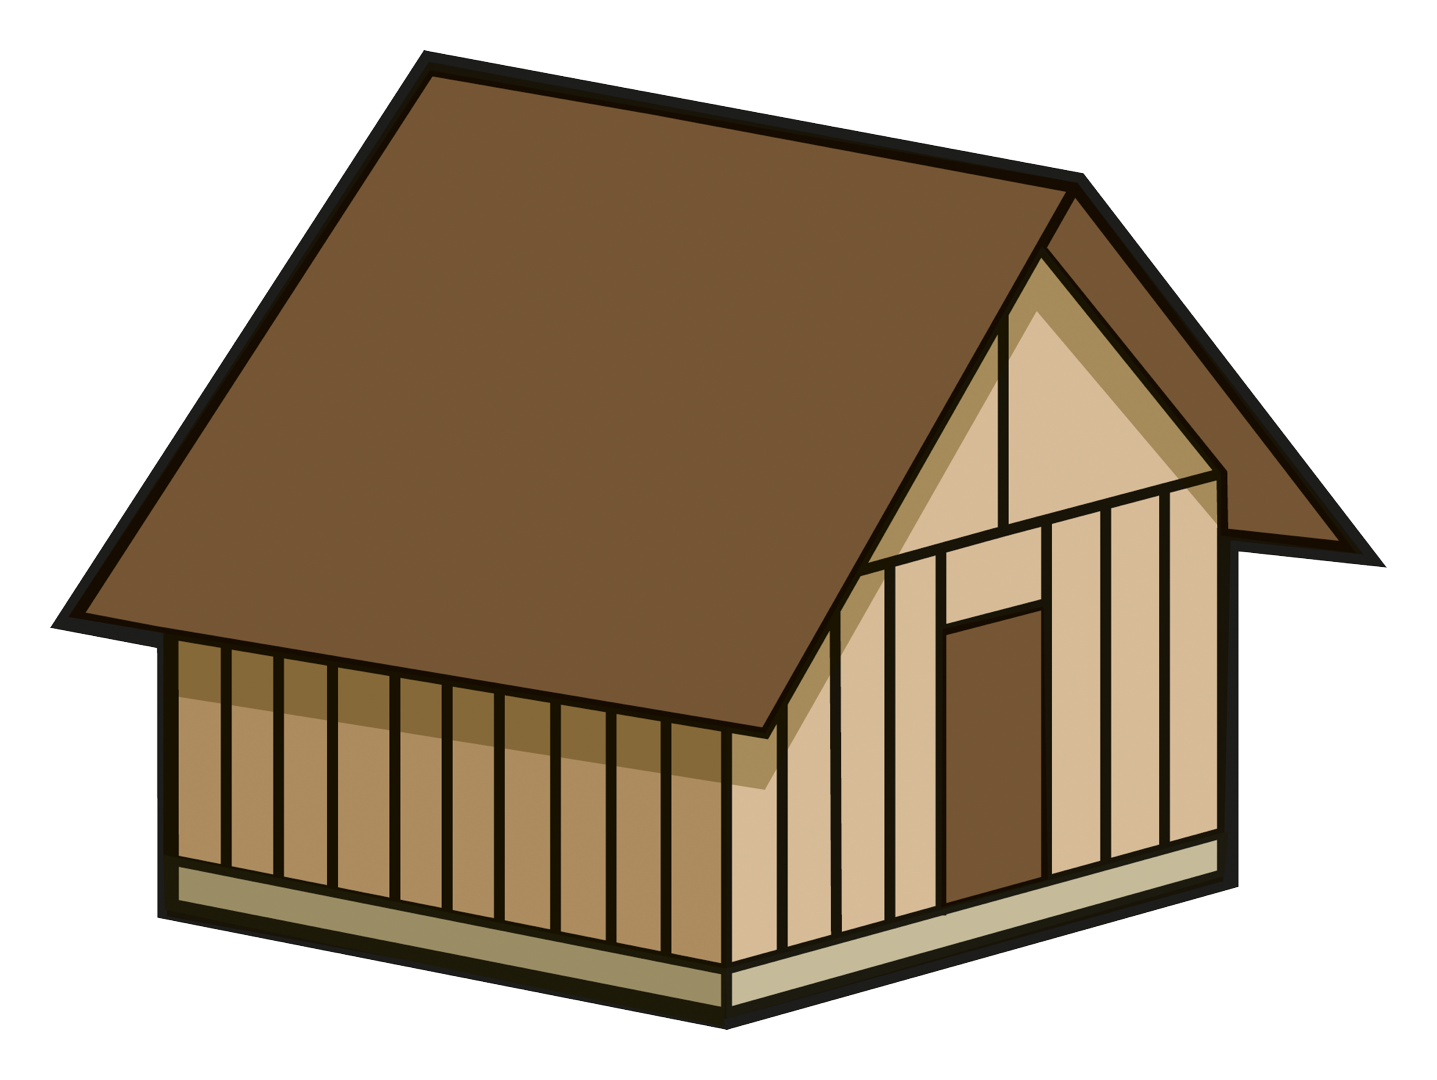 Oven house . Cottage clipart front garden